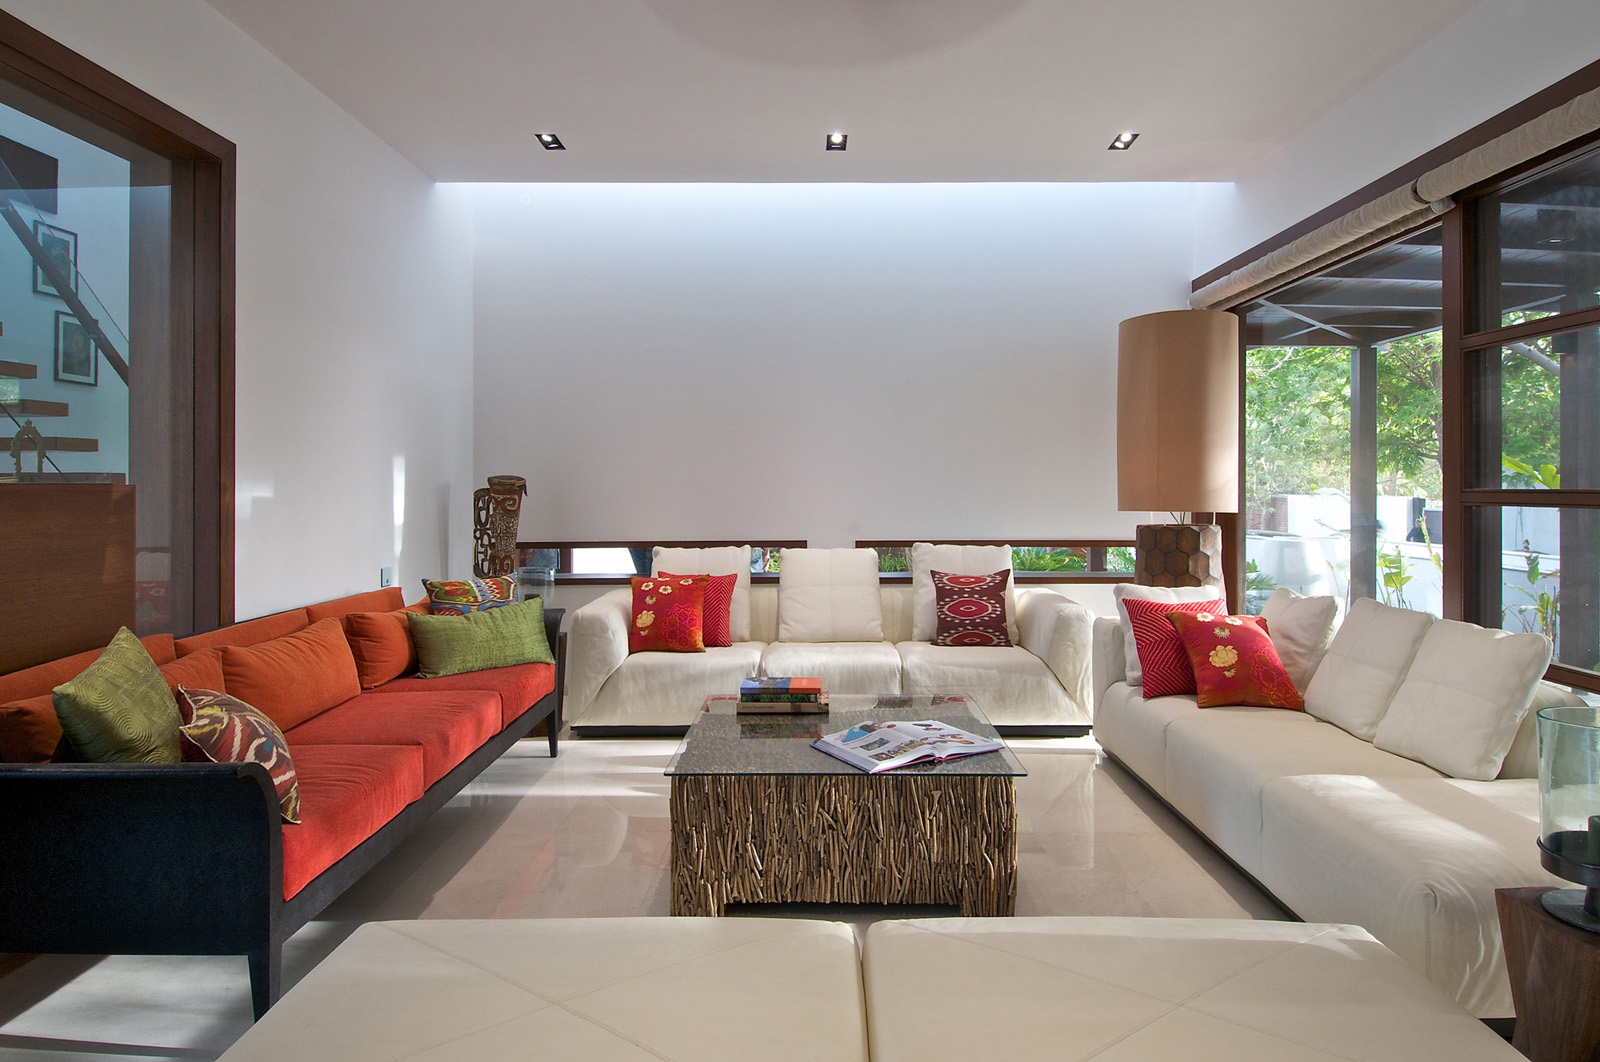 Home Design Ideas Architecture: Timeless Contemporary House In India With Courtyard Zen